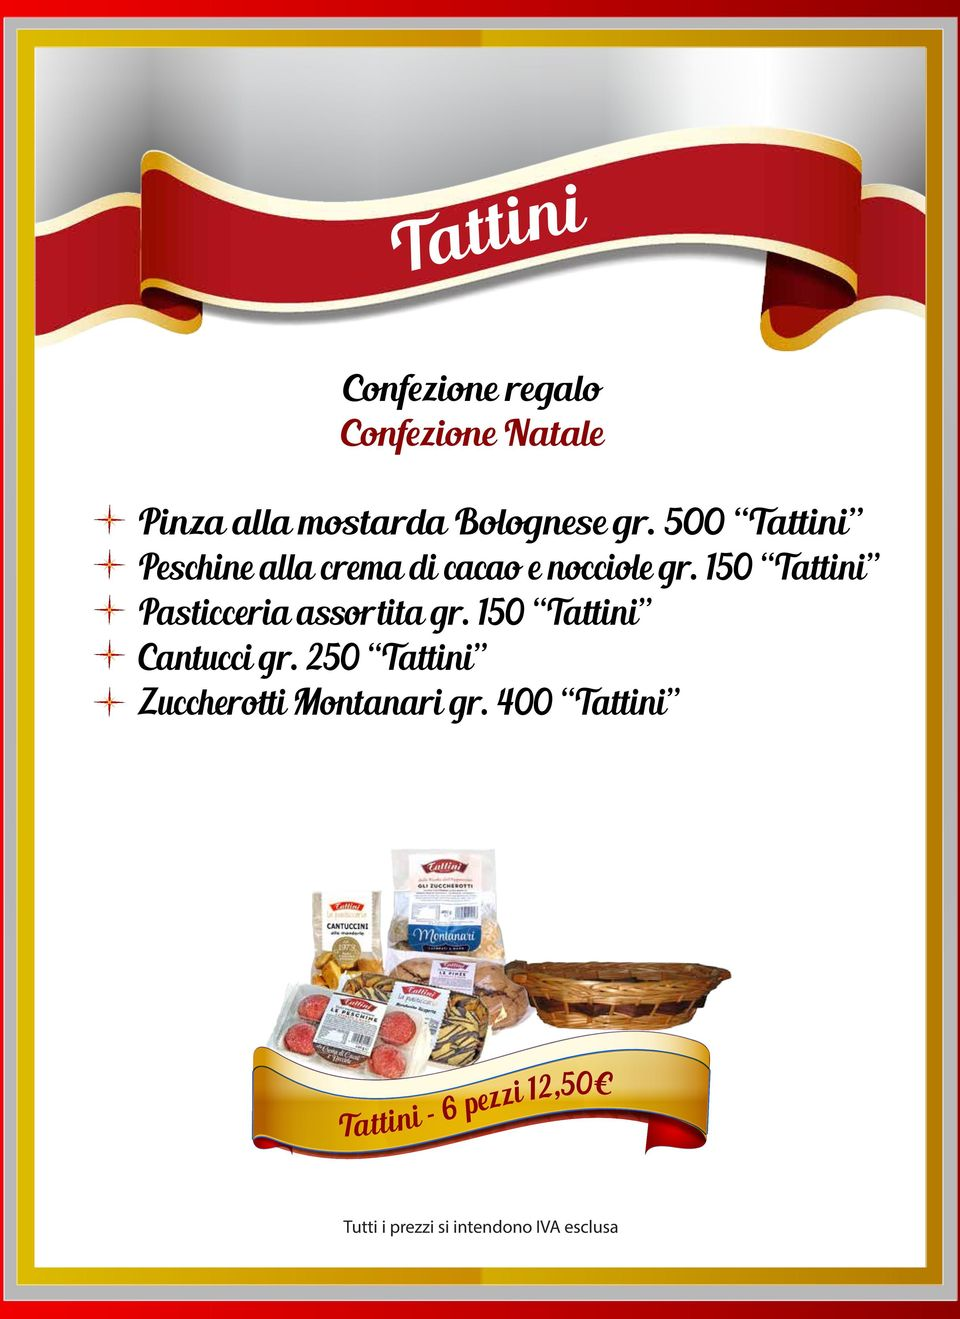 150 Tattini Pasticceria assortita gr.